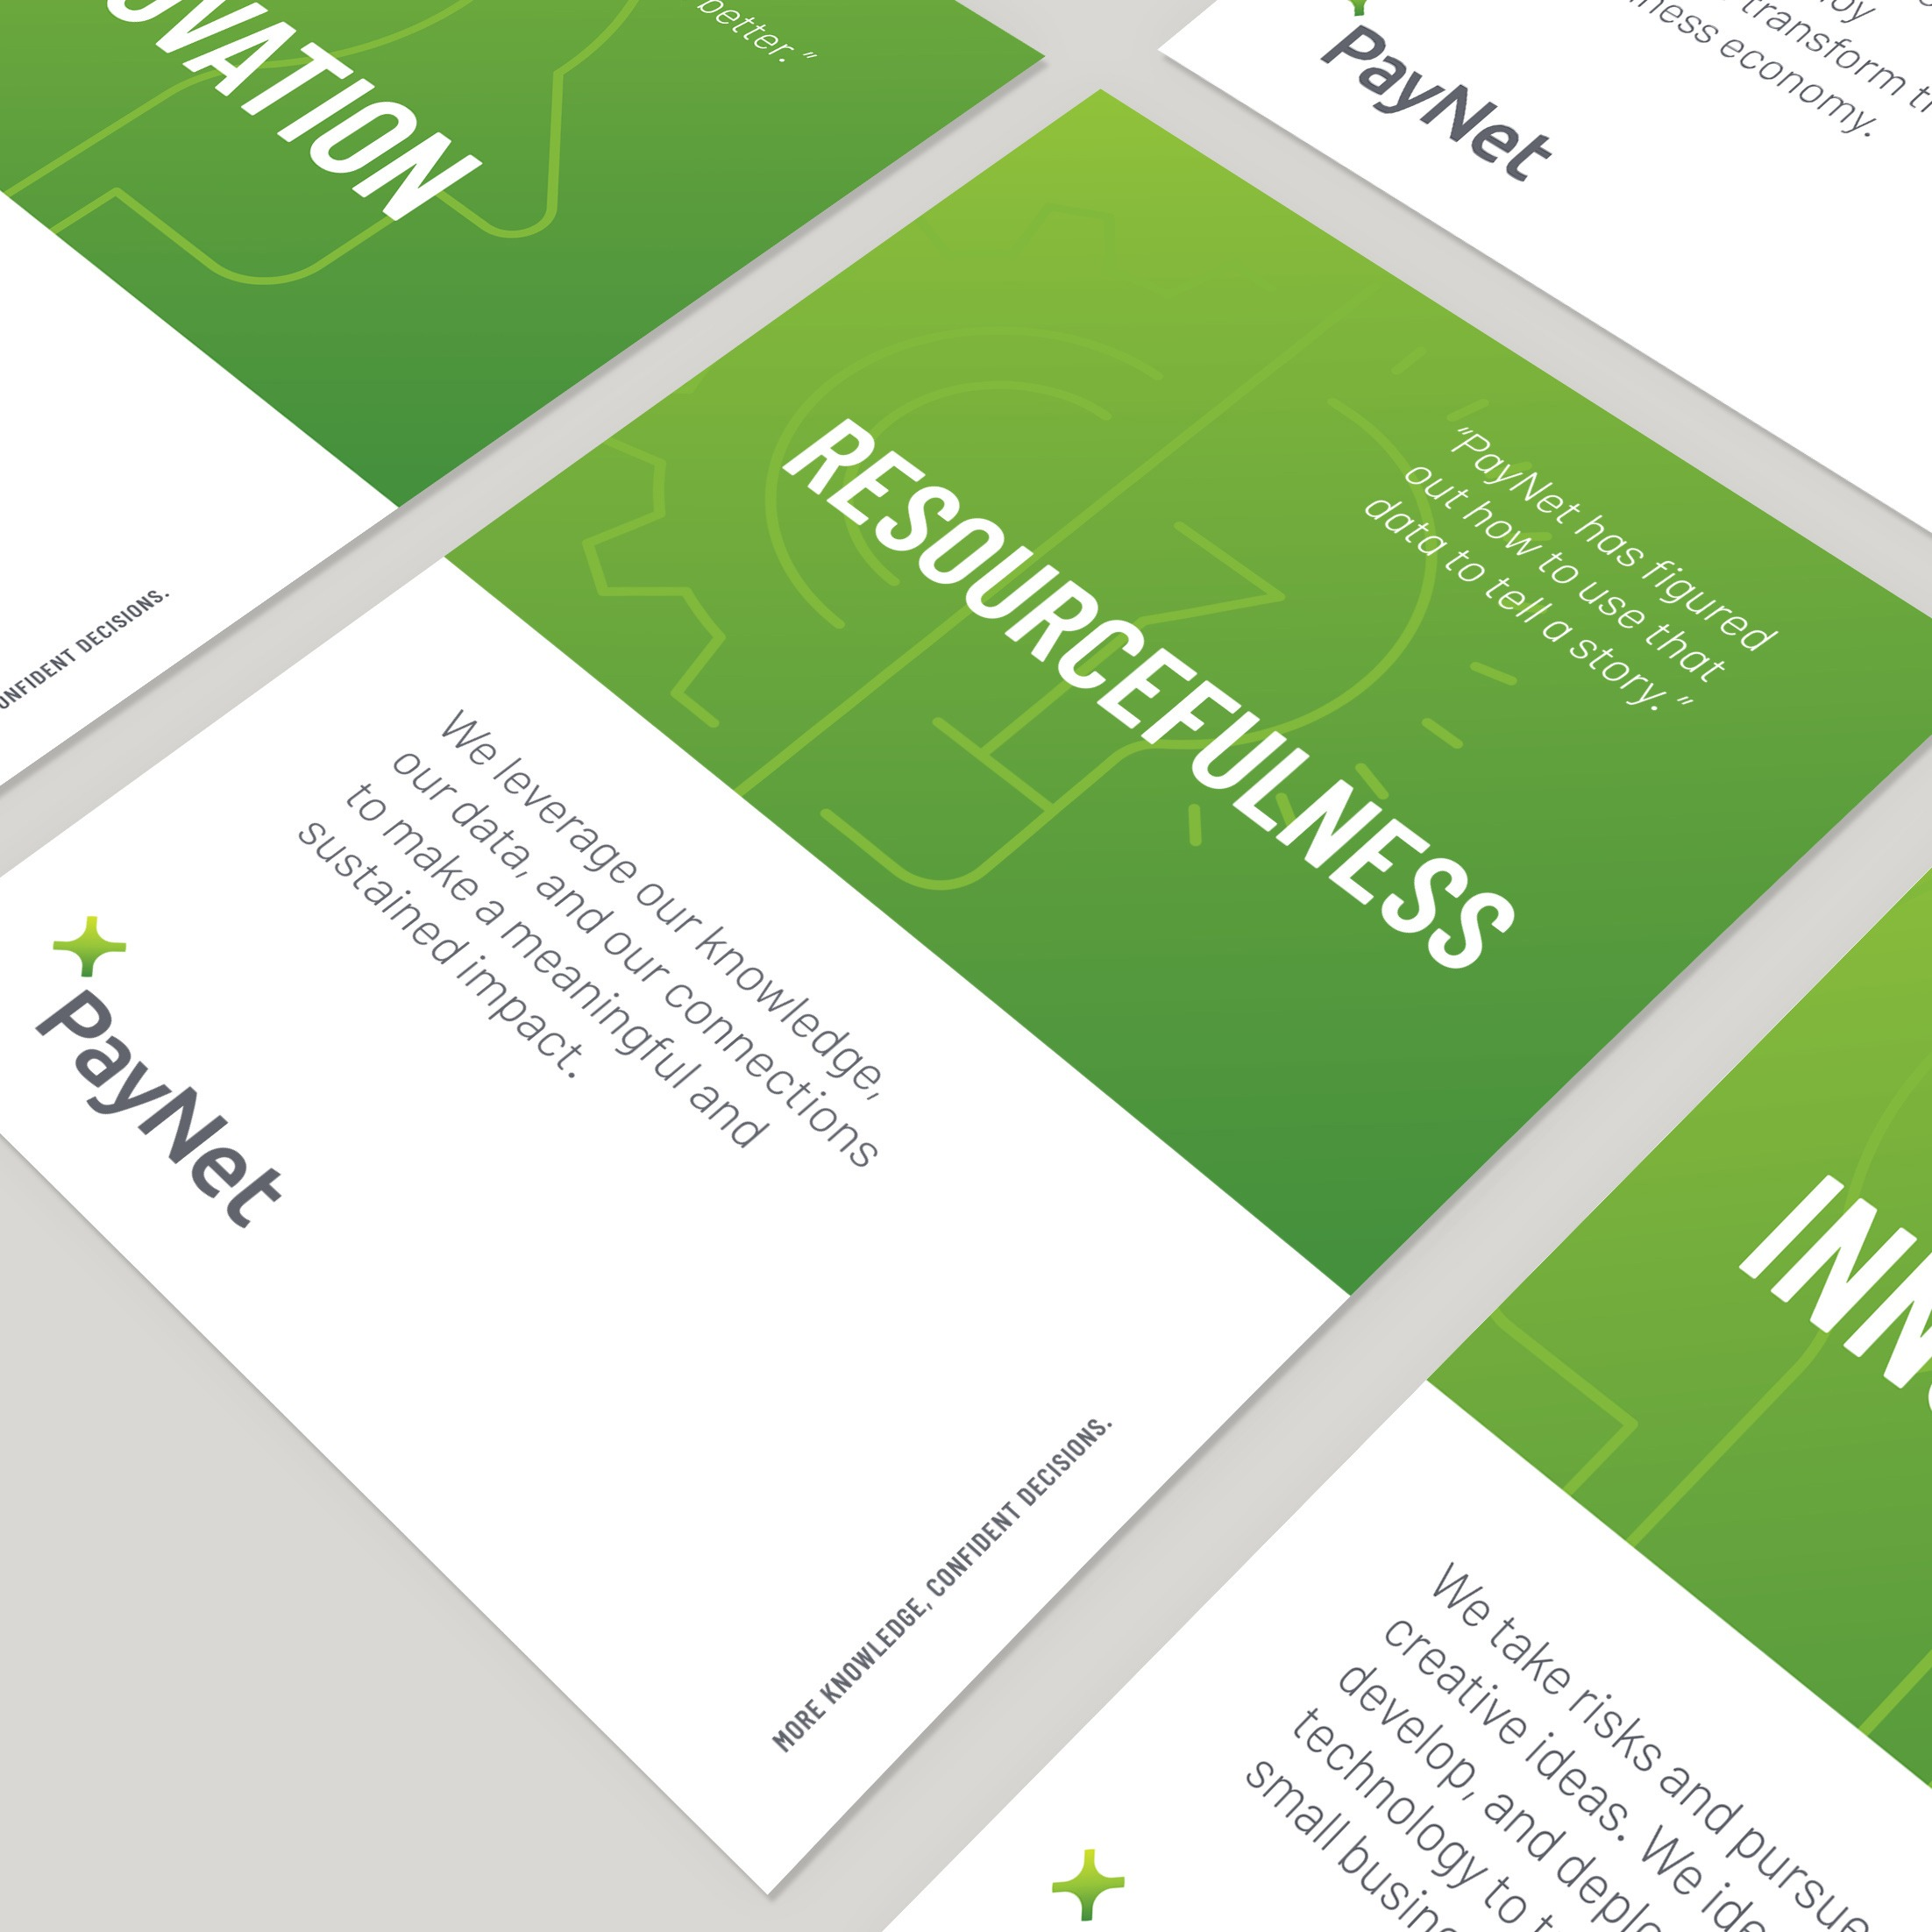 A repeating grid of one page informational sheets featuring client PayNet and their mission statement